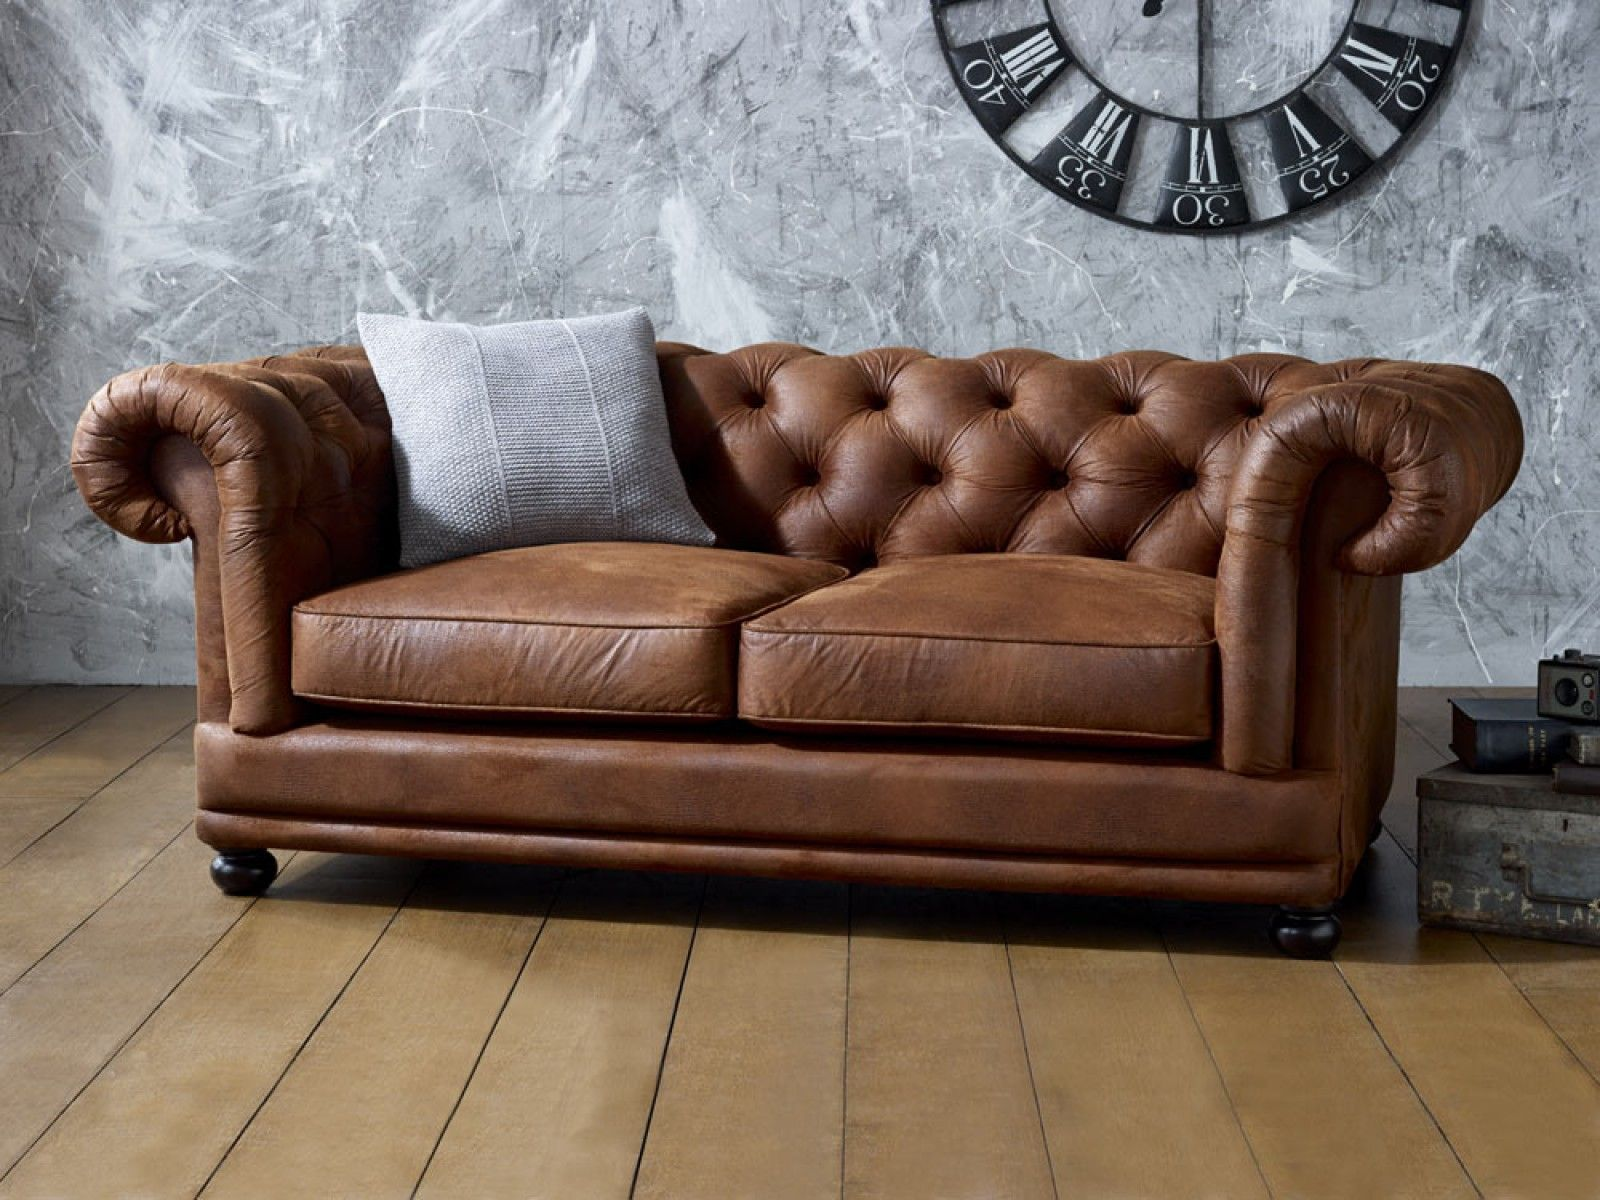 Awesome Faux Leather Couch Fresh Faux Leather Couch 16 For Your Modern Sofa Inspiration With Faux Lea Faux Leather Sofa Faux Leather Couch Brown Leather Sofa